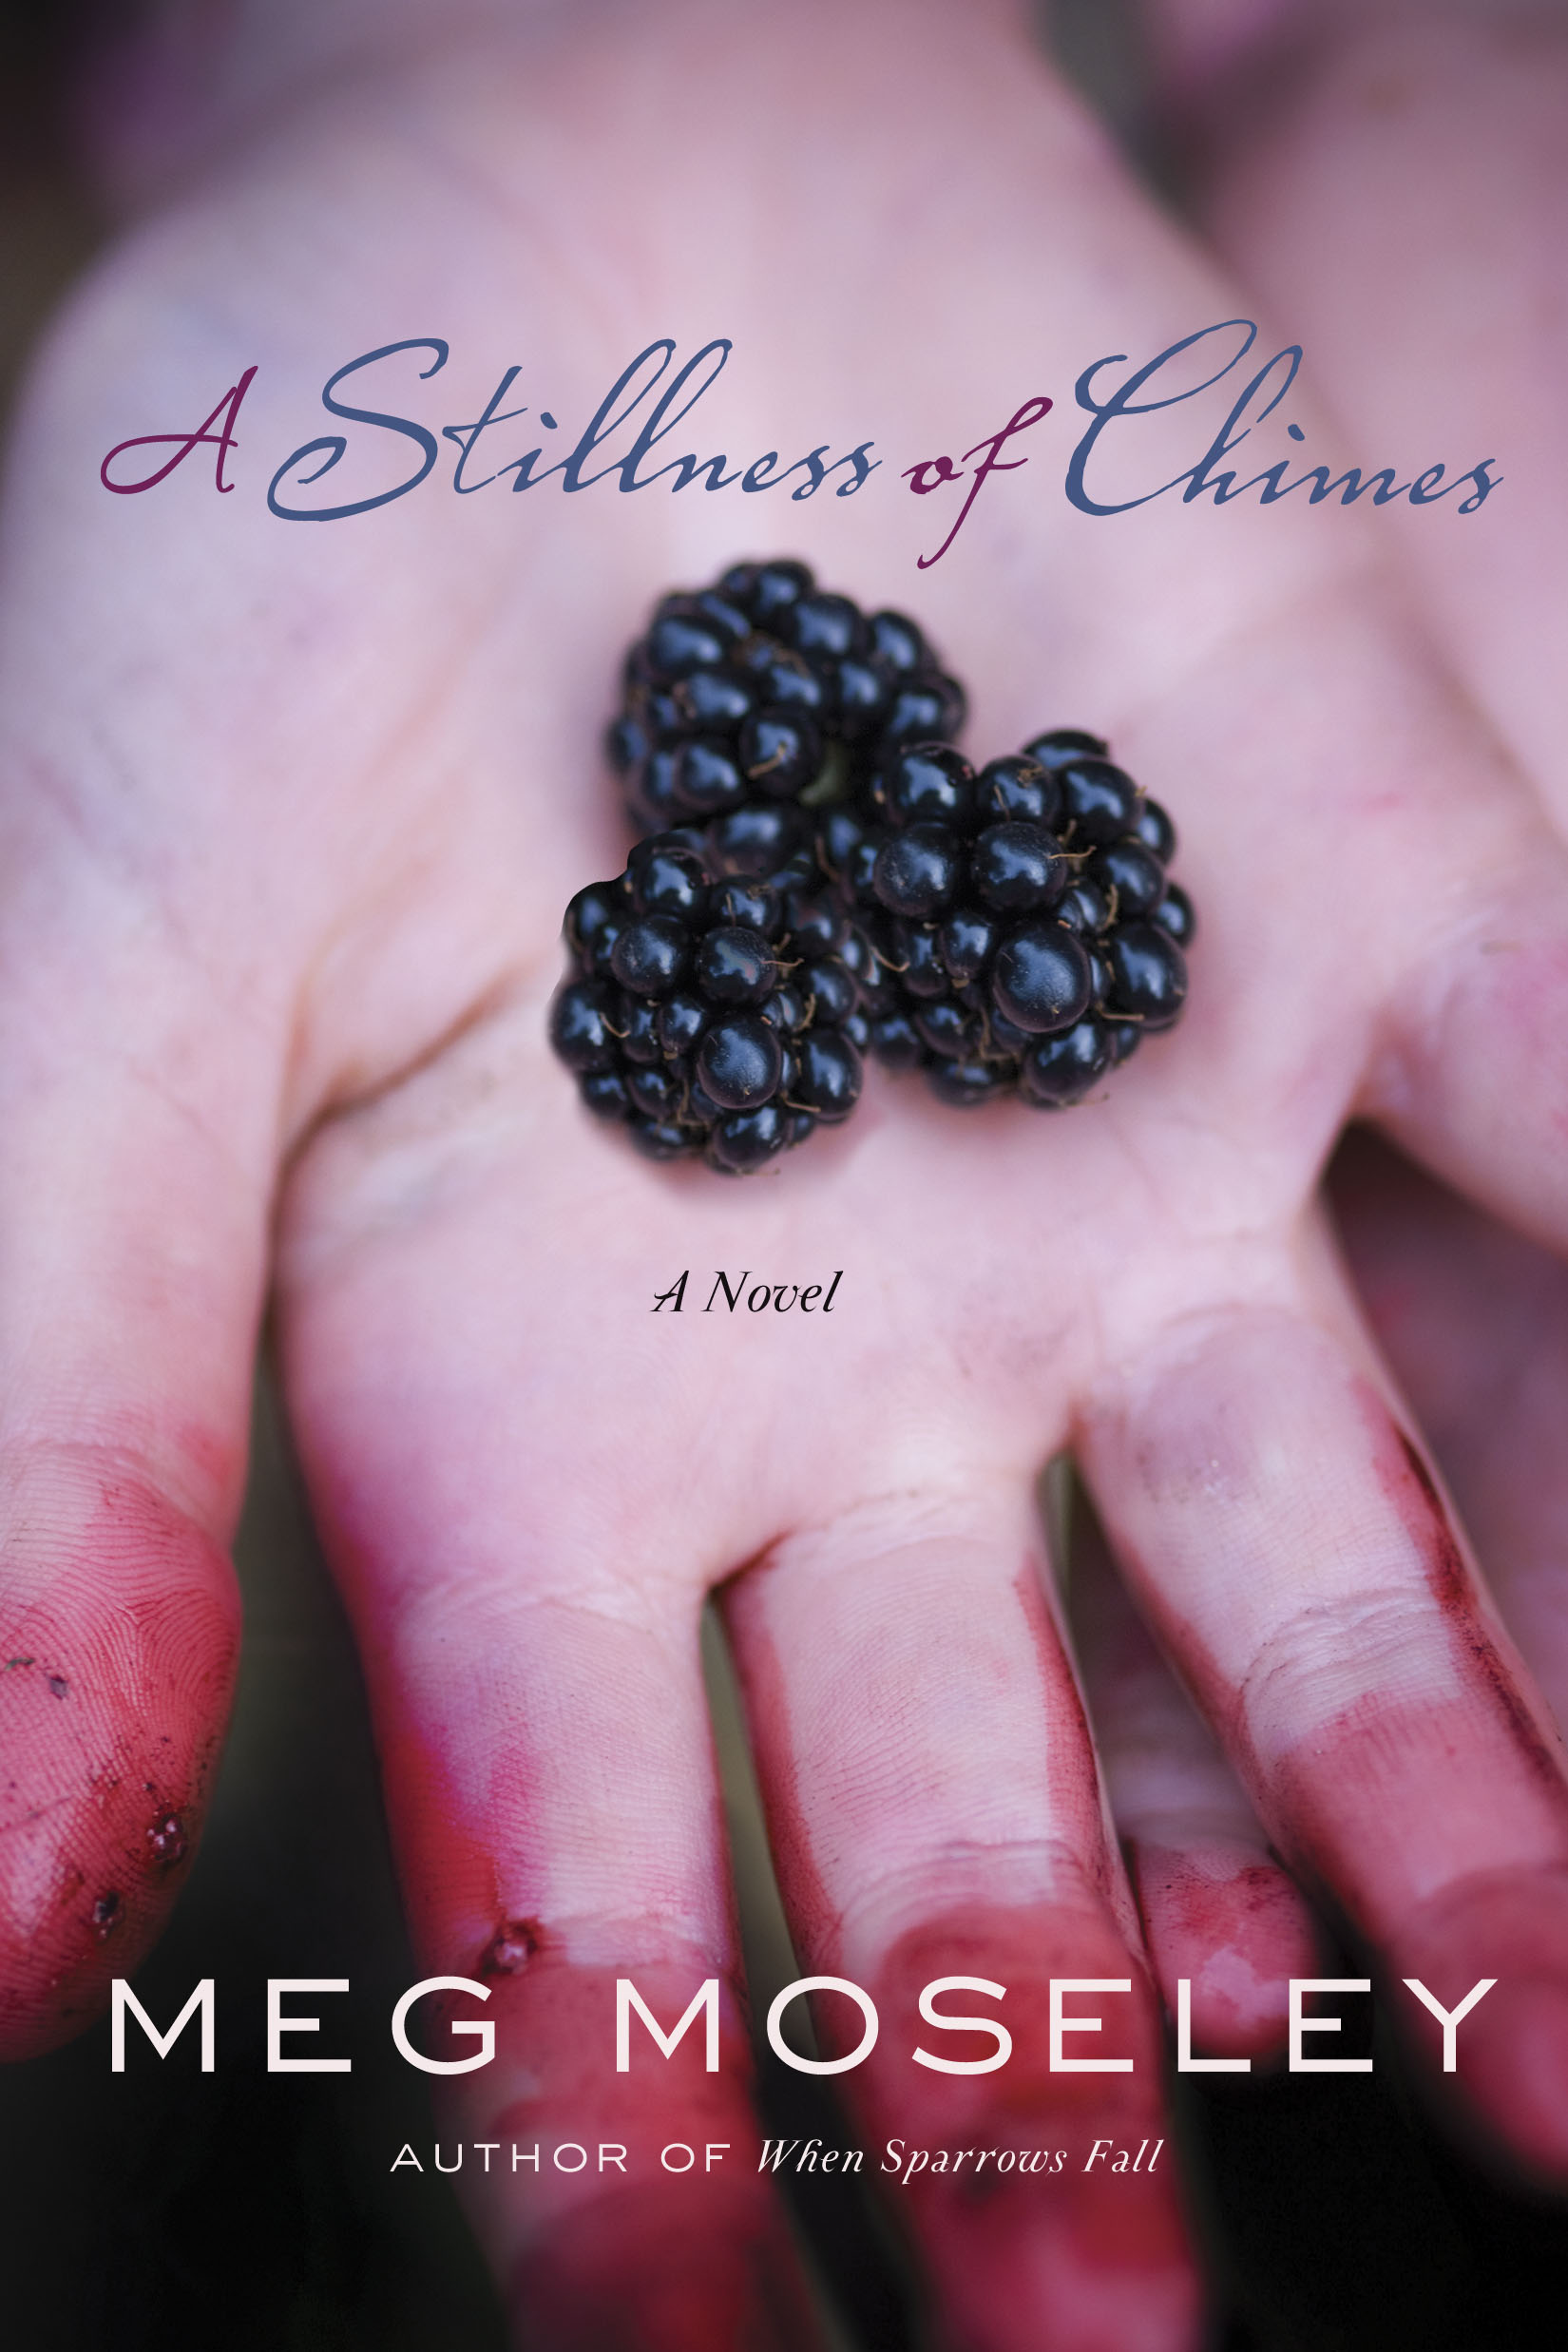 Amazon - A Stillness of Chimes